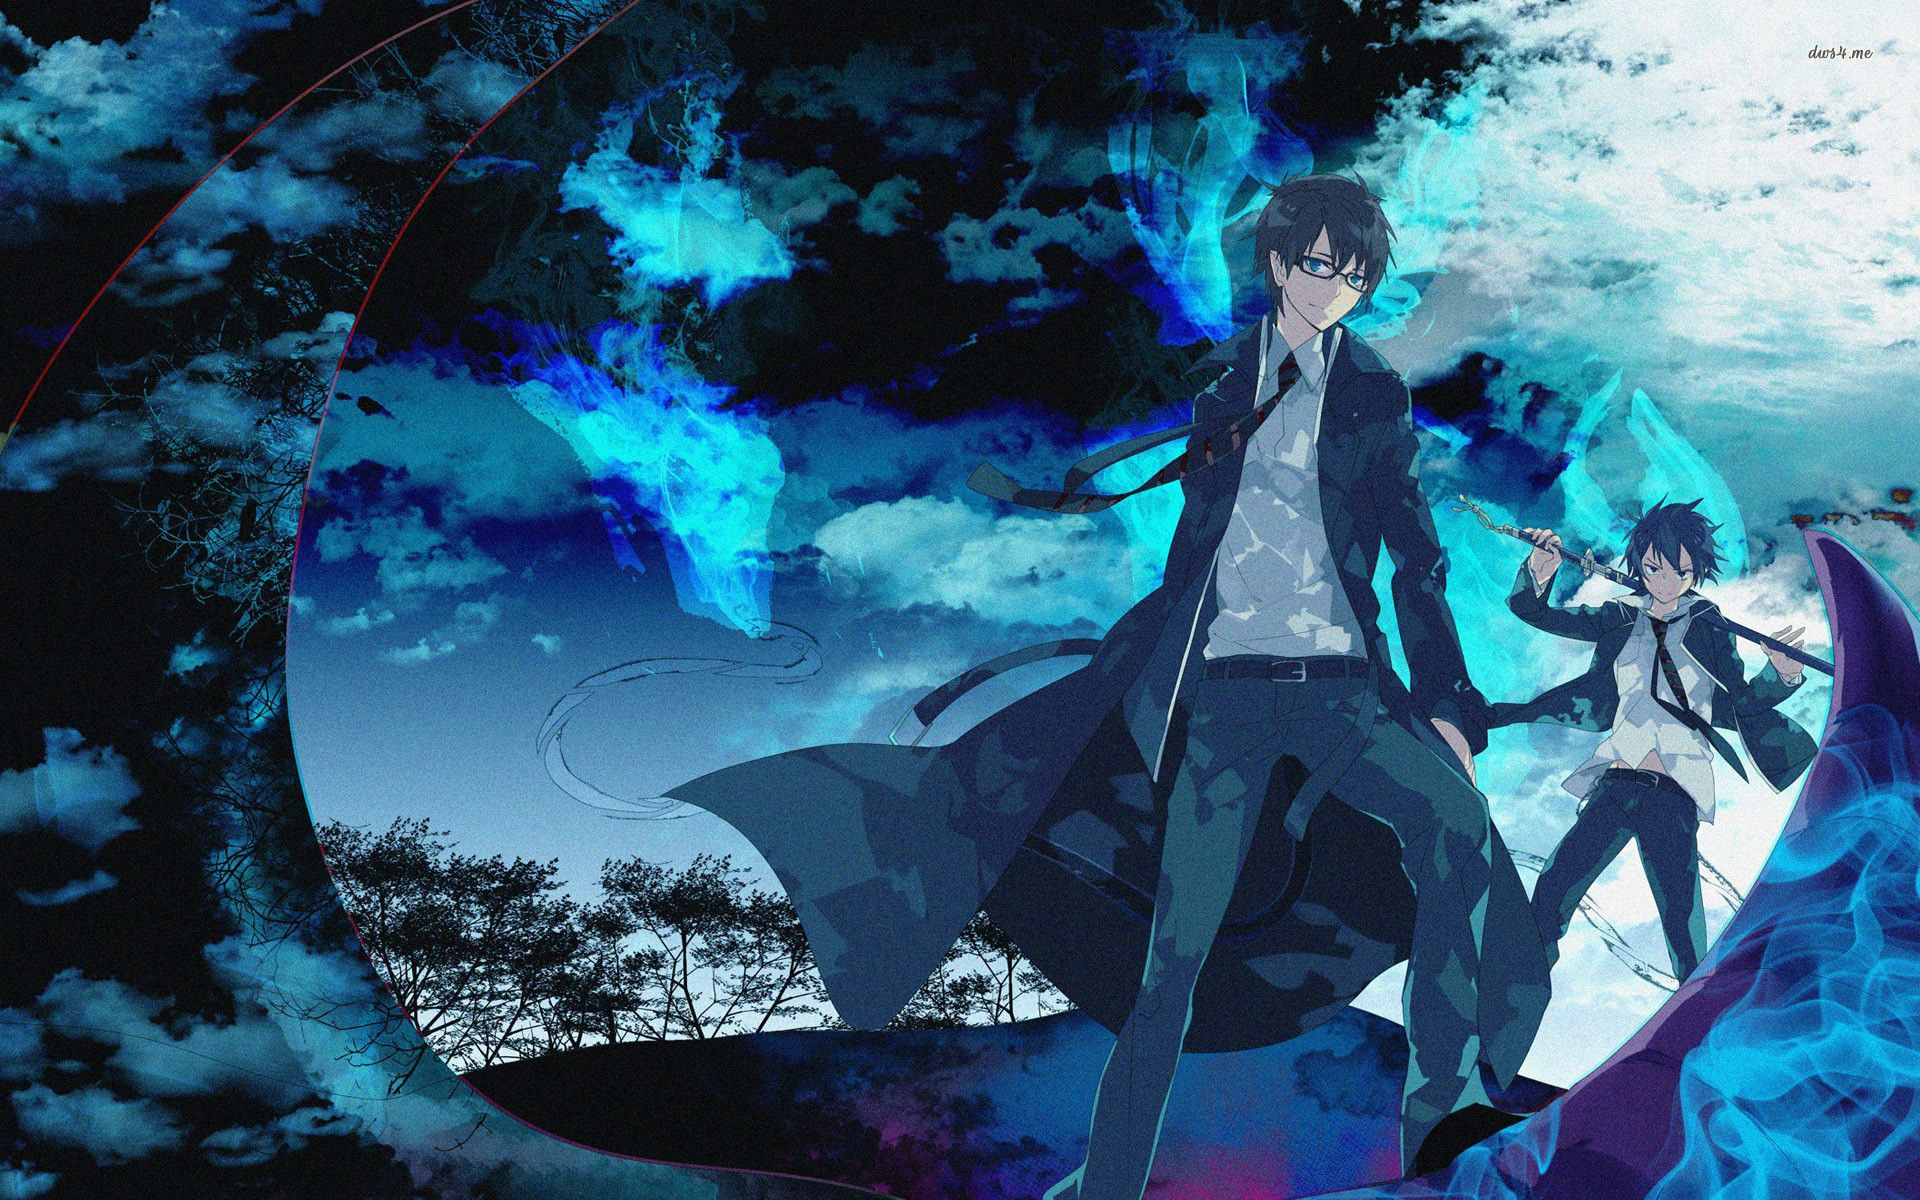 Click On The Image For High Quality Anime Merchandise Https Www Animeshirtclub Com Anime Naruto Animequotes An Anime Wallpaper Blue Exorcist Anime Shadow